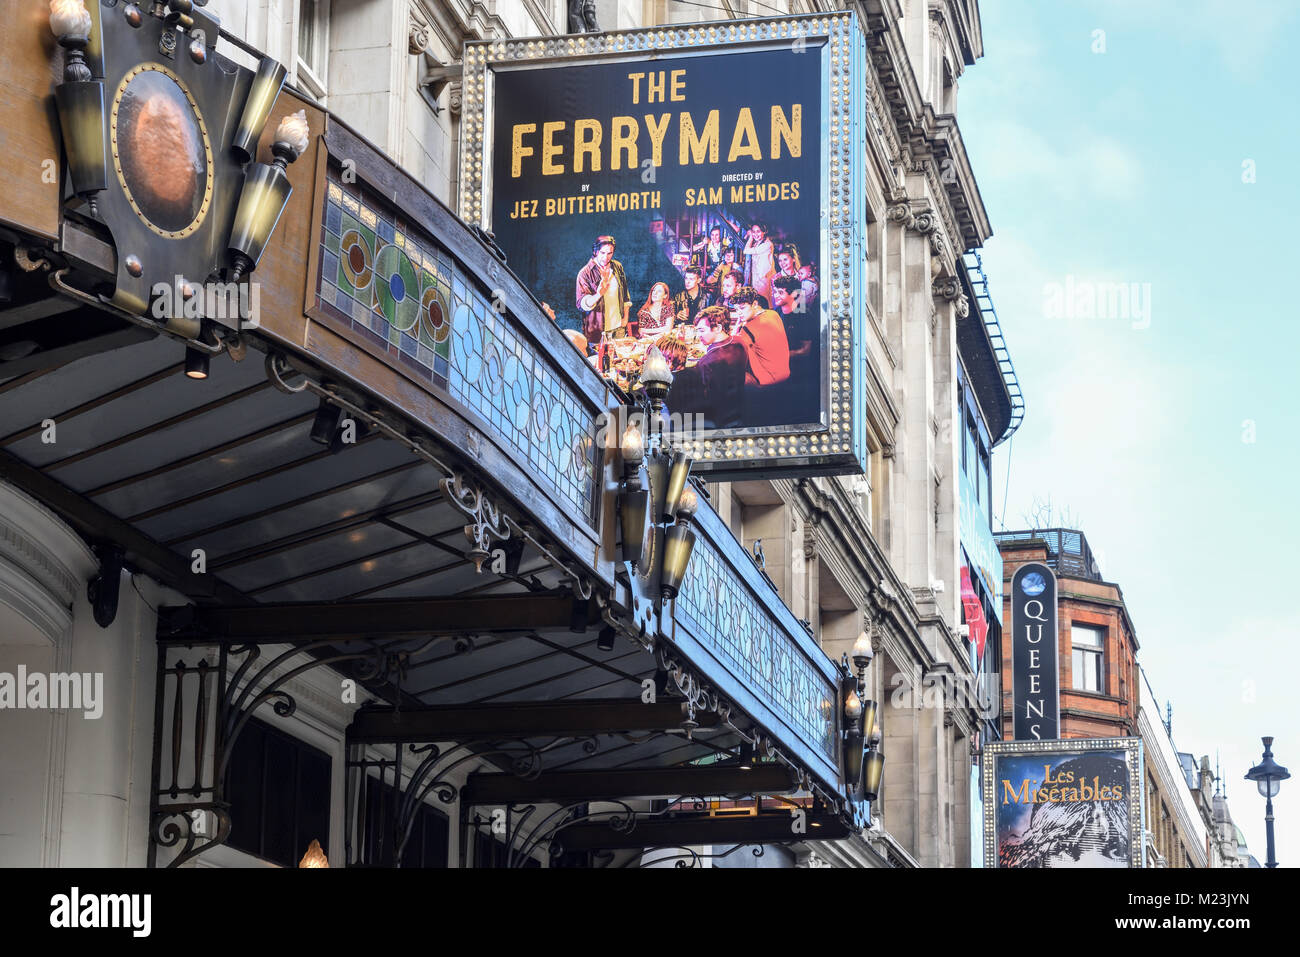 The Ferryman at the Gielgud Theatre London,UK. - Stock Image